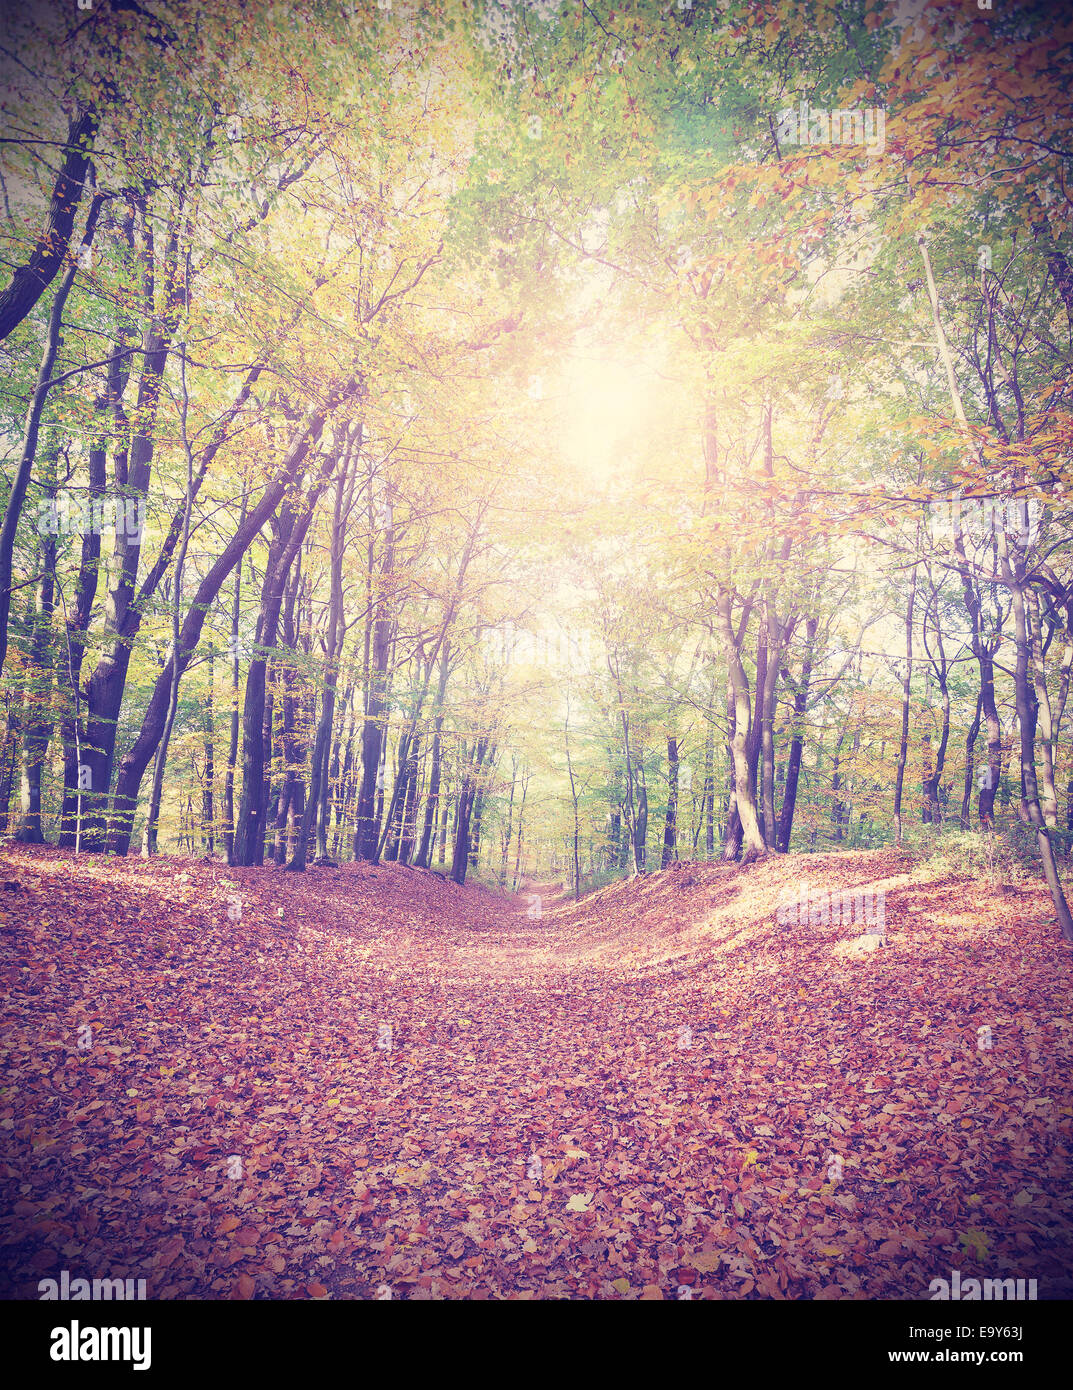 Retro filtered picture of a an autumnal forest. - Stock Image